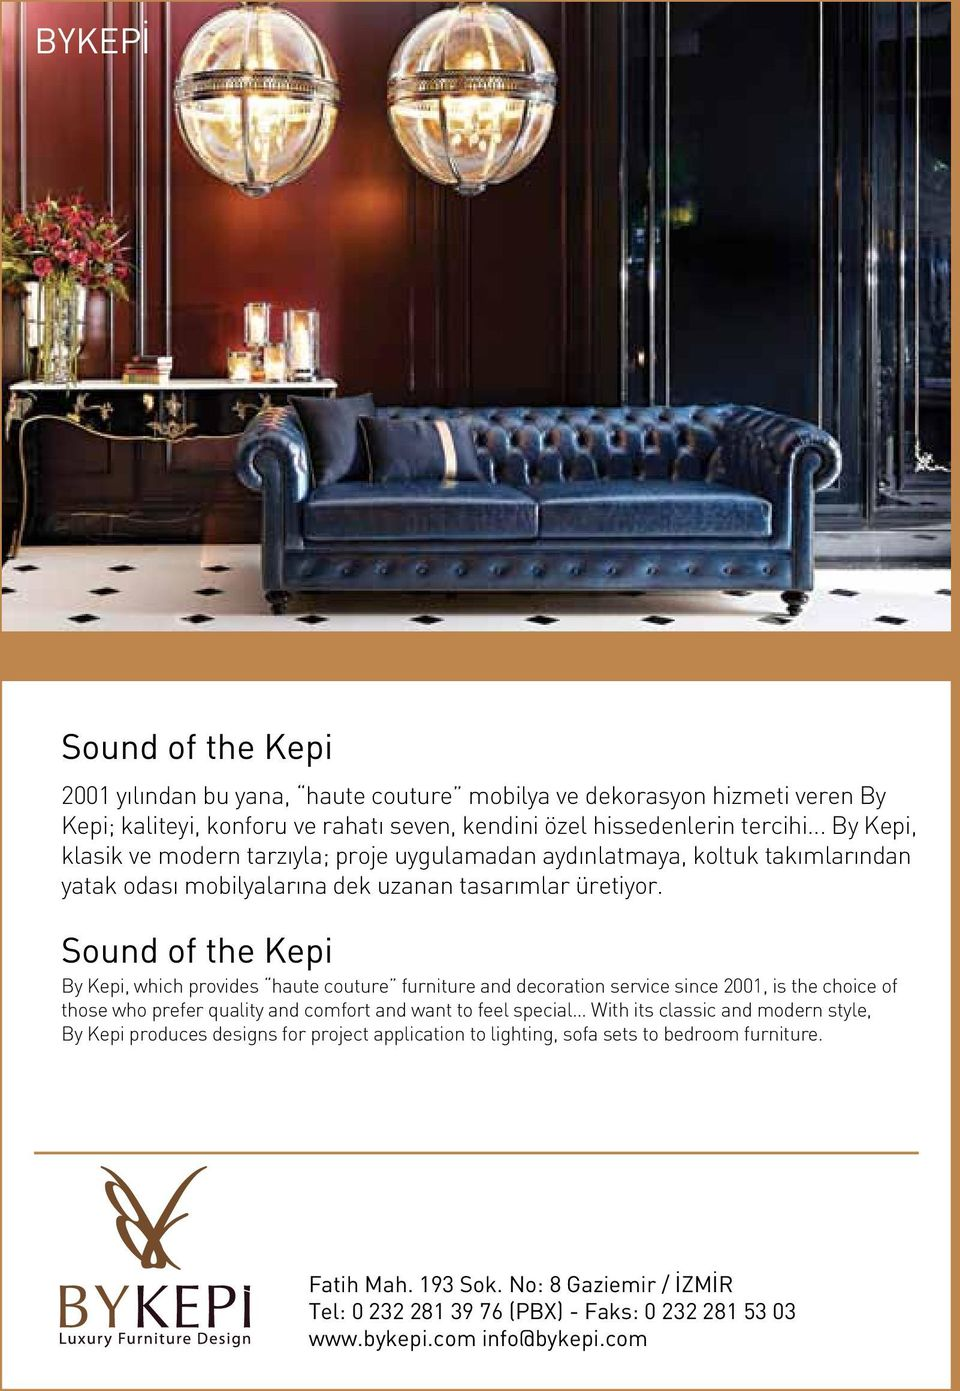 Sound of the Kepi By Kepi, which provides haute couture furniture and decoration service since 2001, is the choice of those who prefer quality and comfort and want to feel special With its